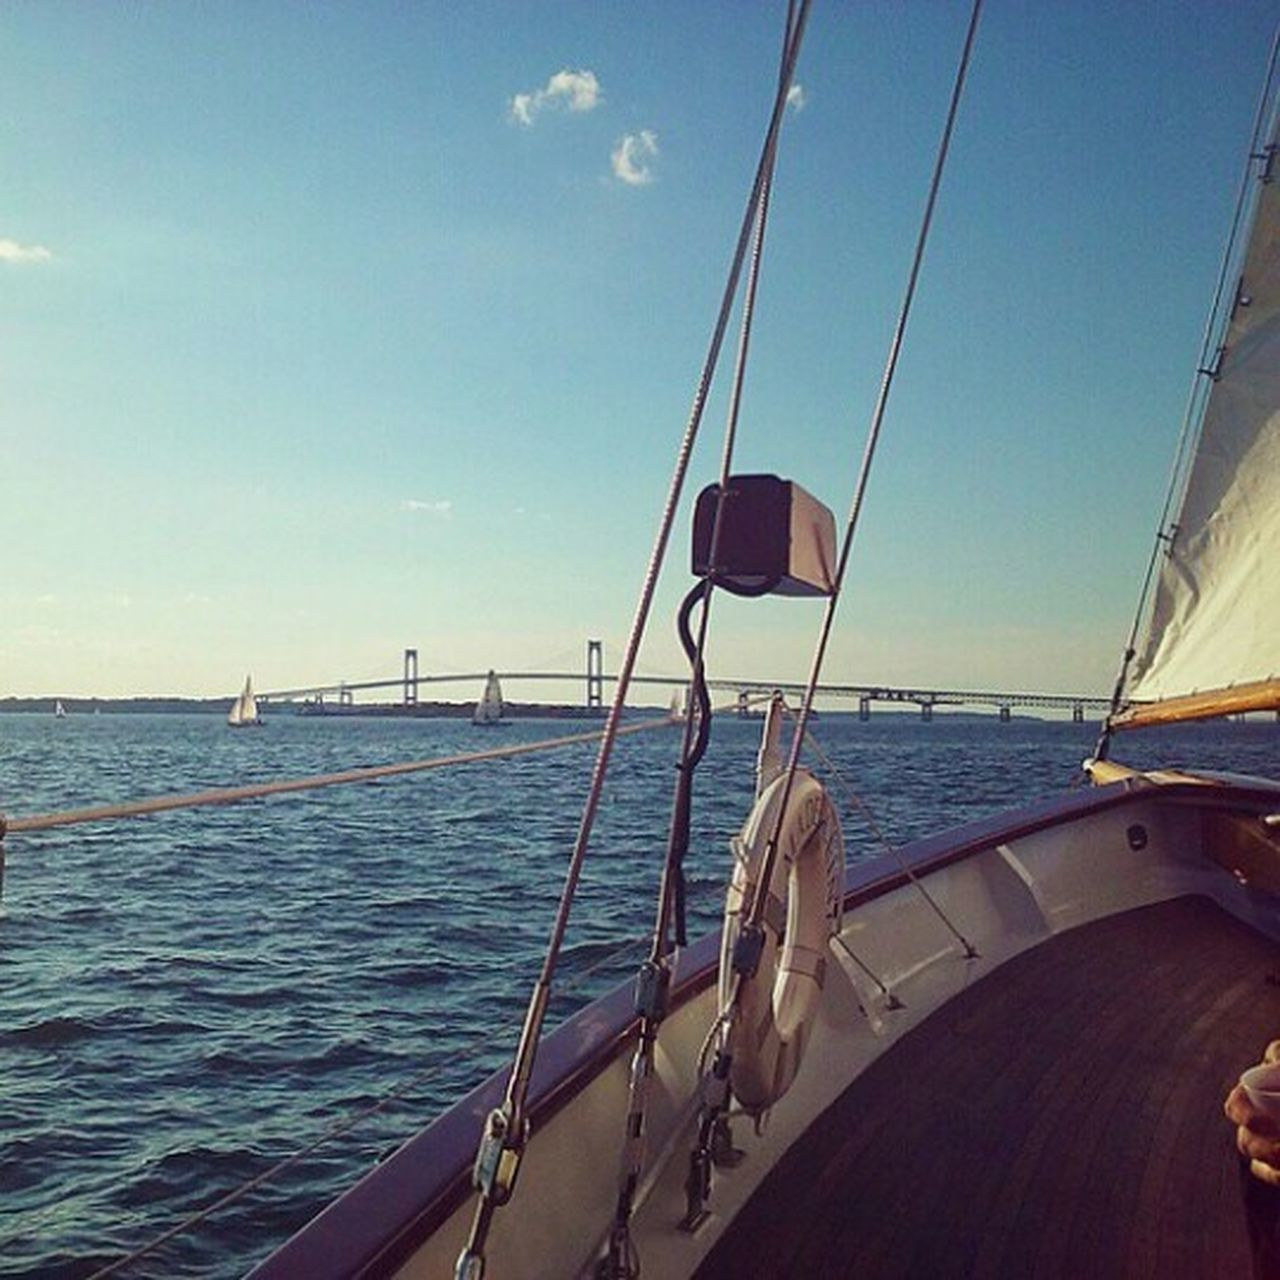 sea, transportation, nautical vessel, mode of transport, water, sky, no people, sailing, sailboat, outdoors, nature, day, yacht, mast